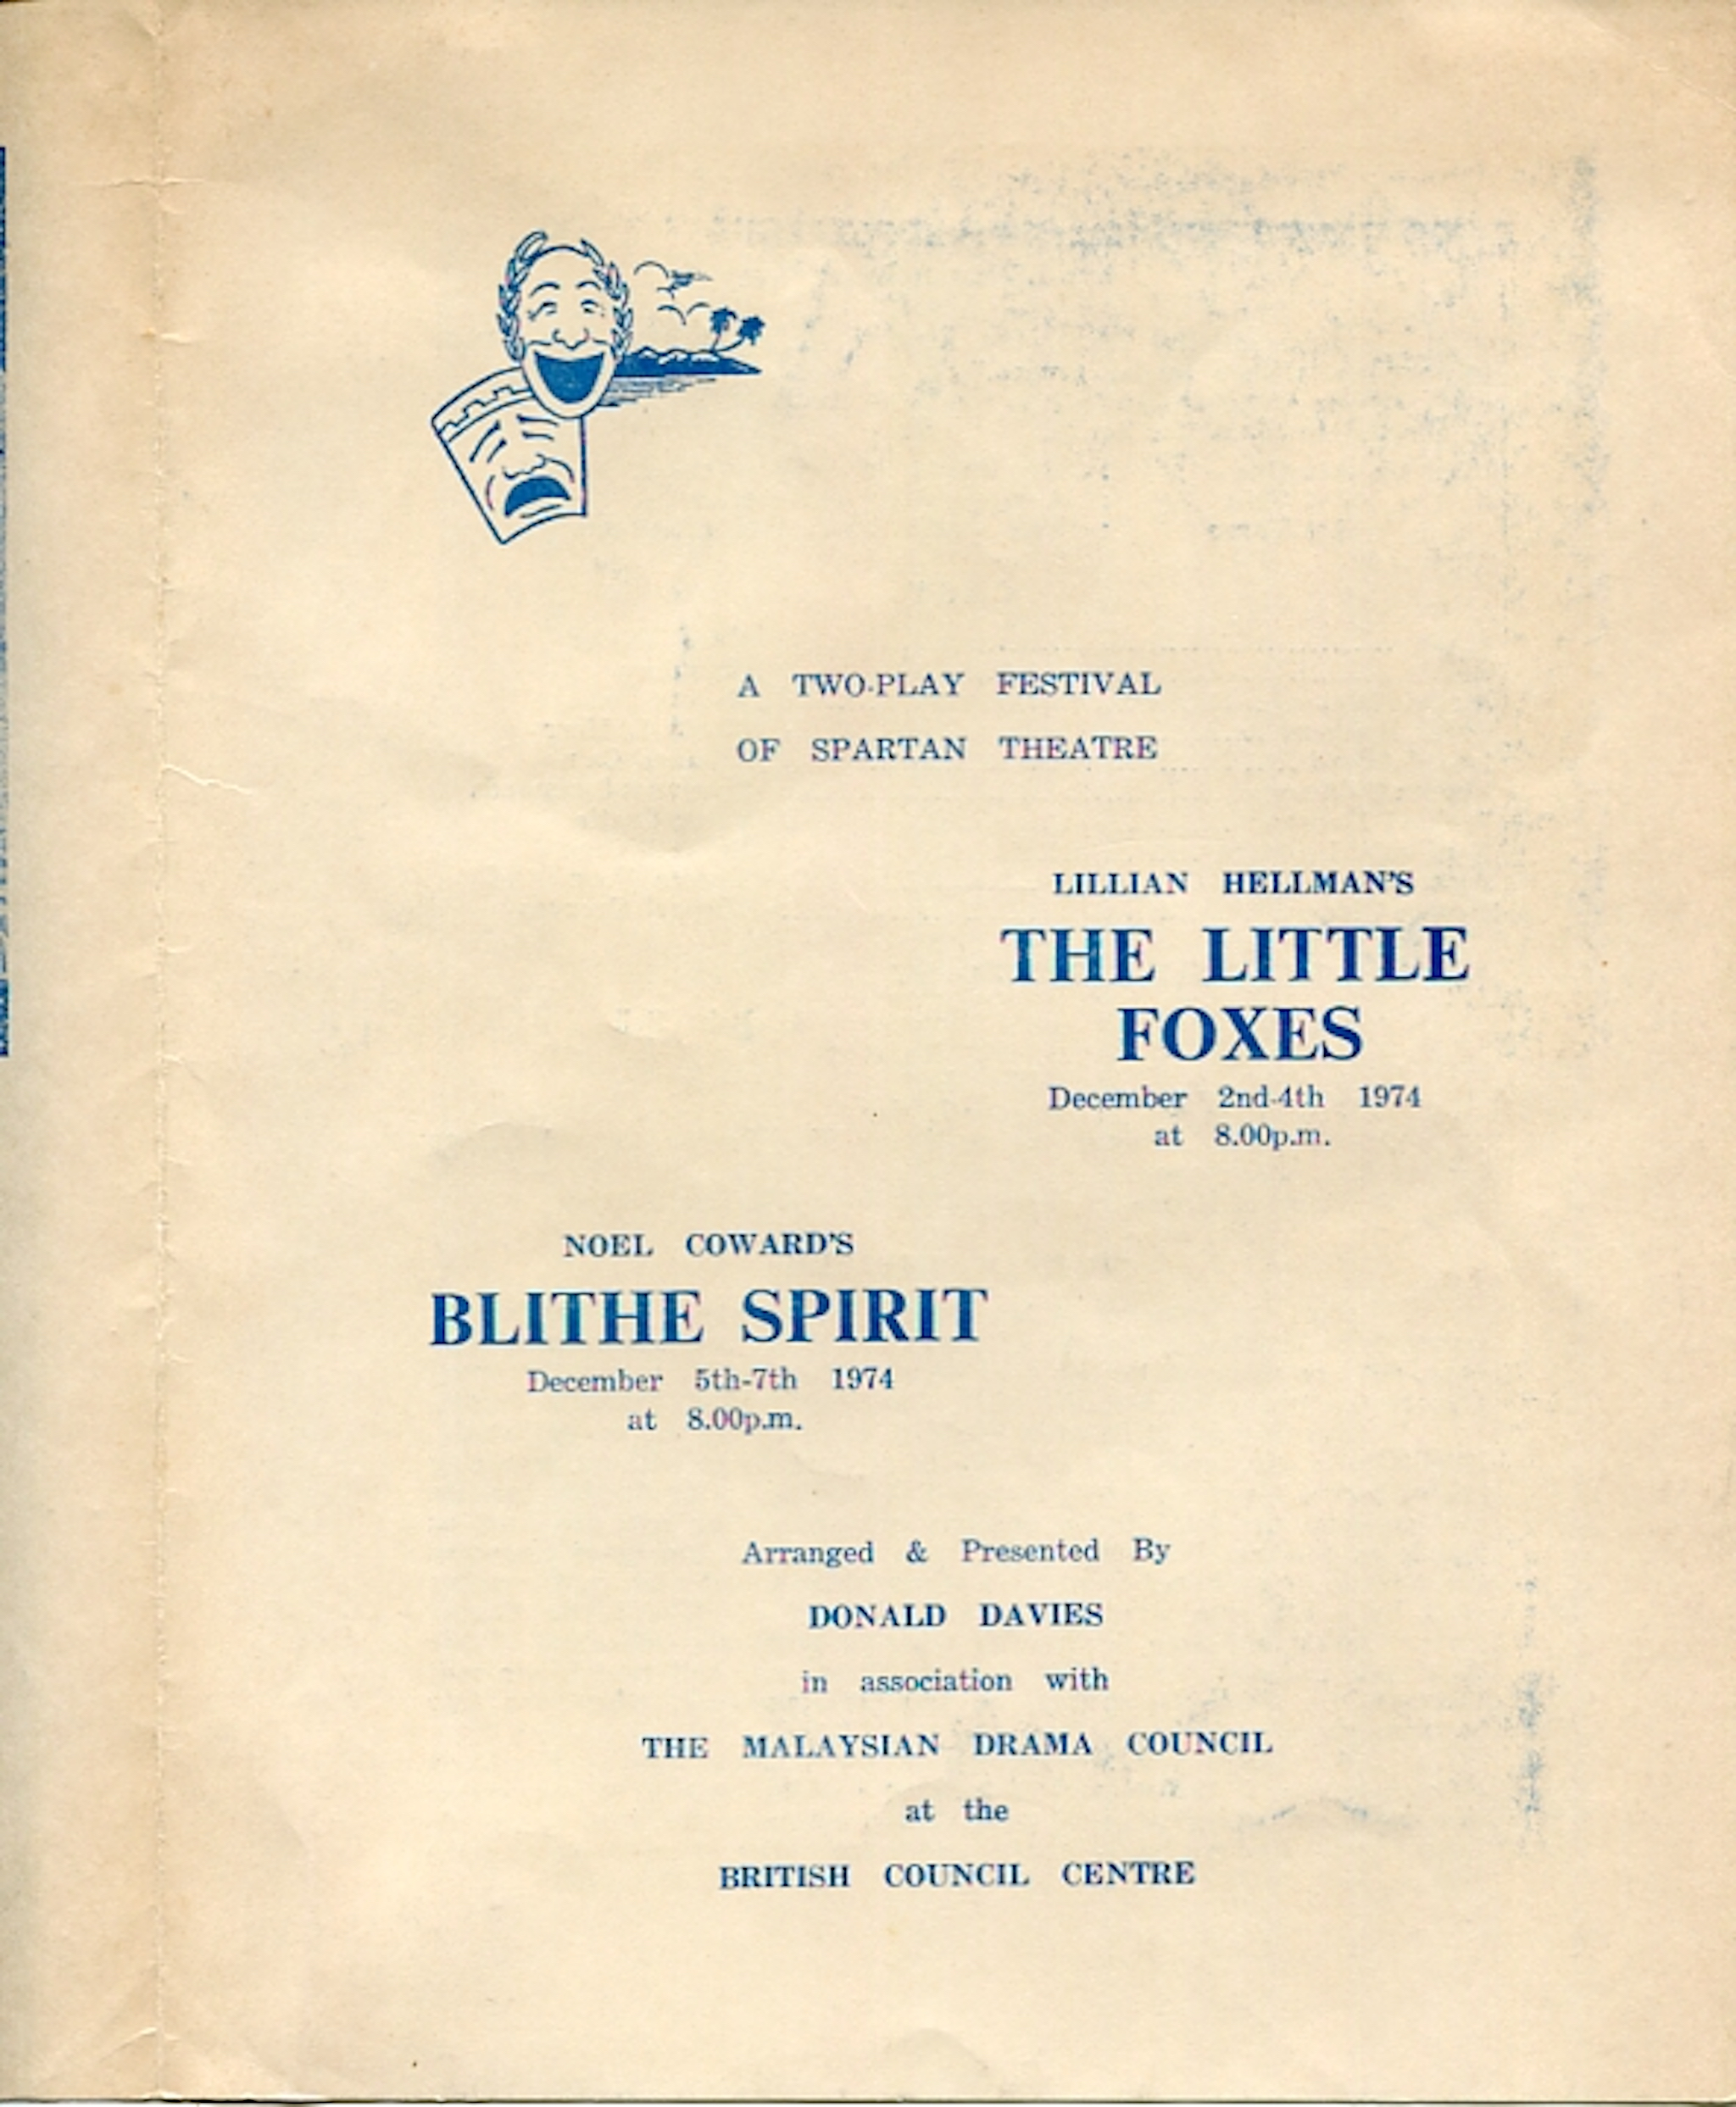 1974 The Little Foxes & Blithe Spirit cover 1